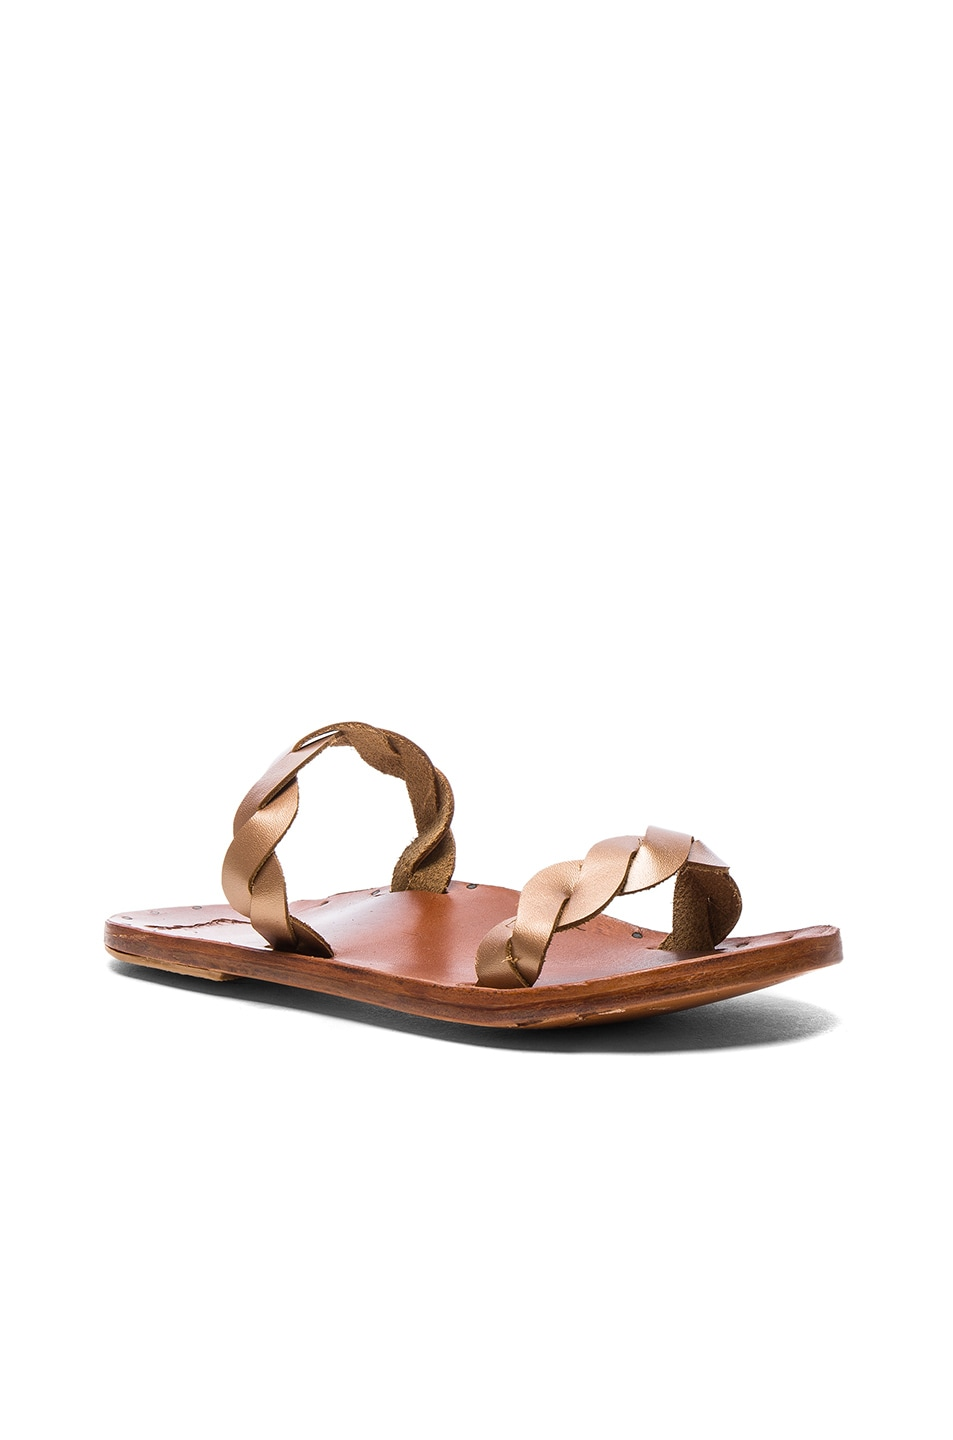 Image 2 of Beek The Pipit Sandals in Rose Gold & Tan